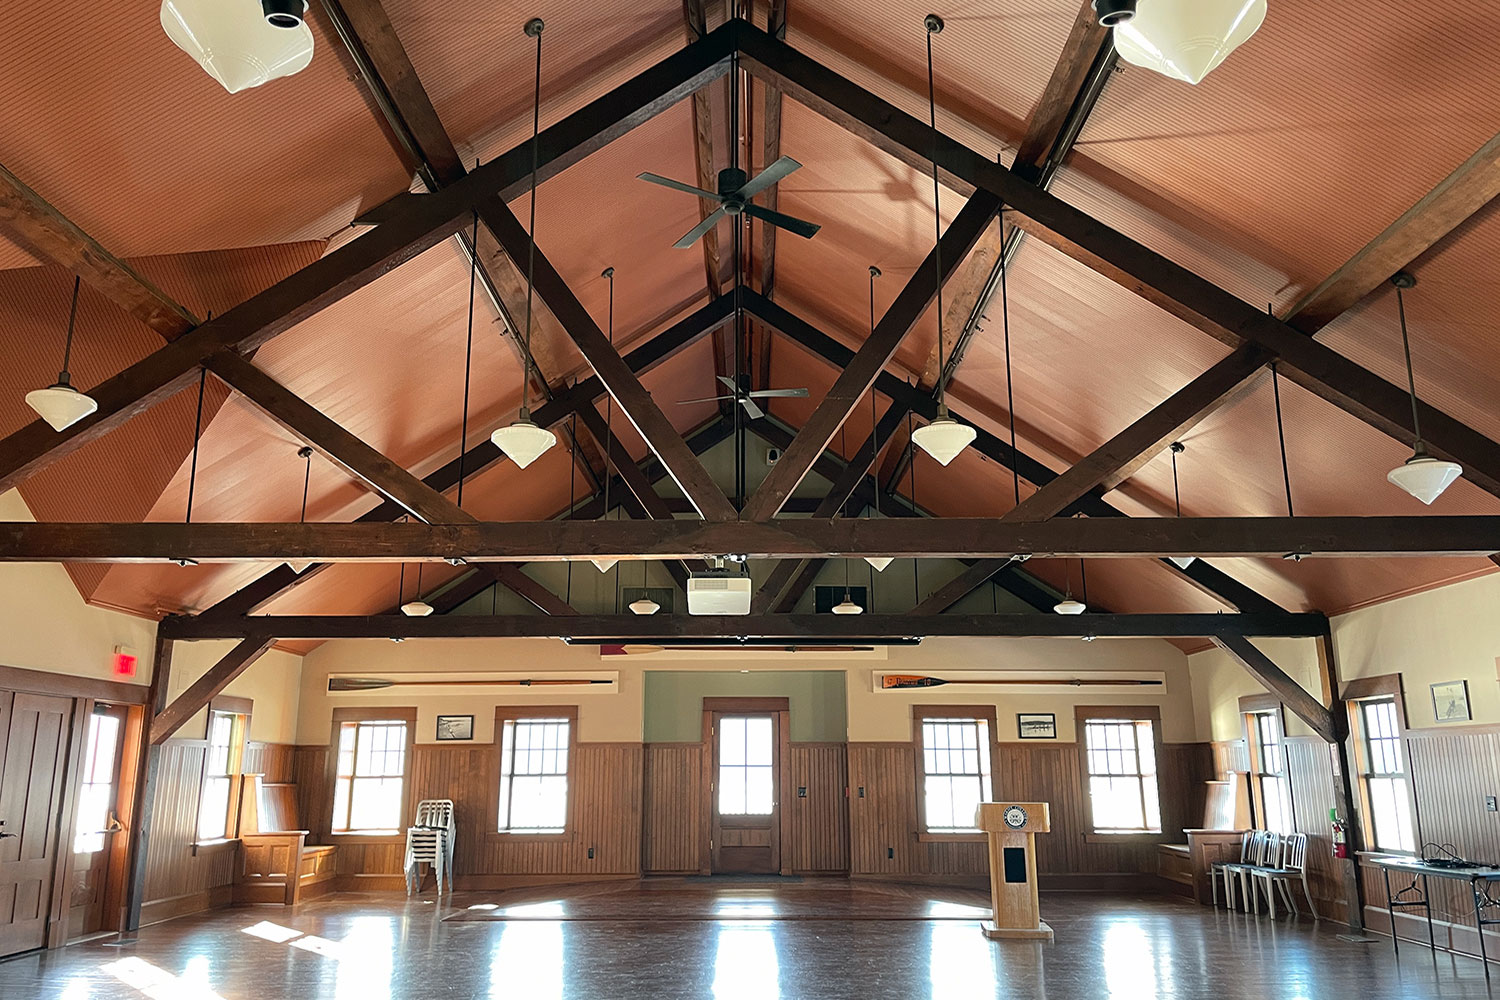 The Cornell boathouse at Marist College. WSDG improved the acoustic quality inside the space. Front.